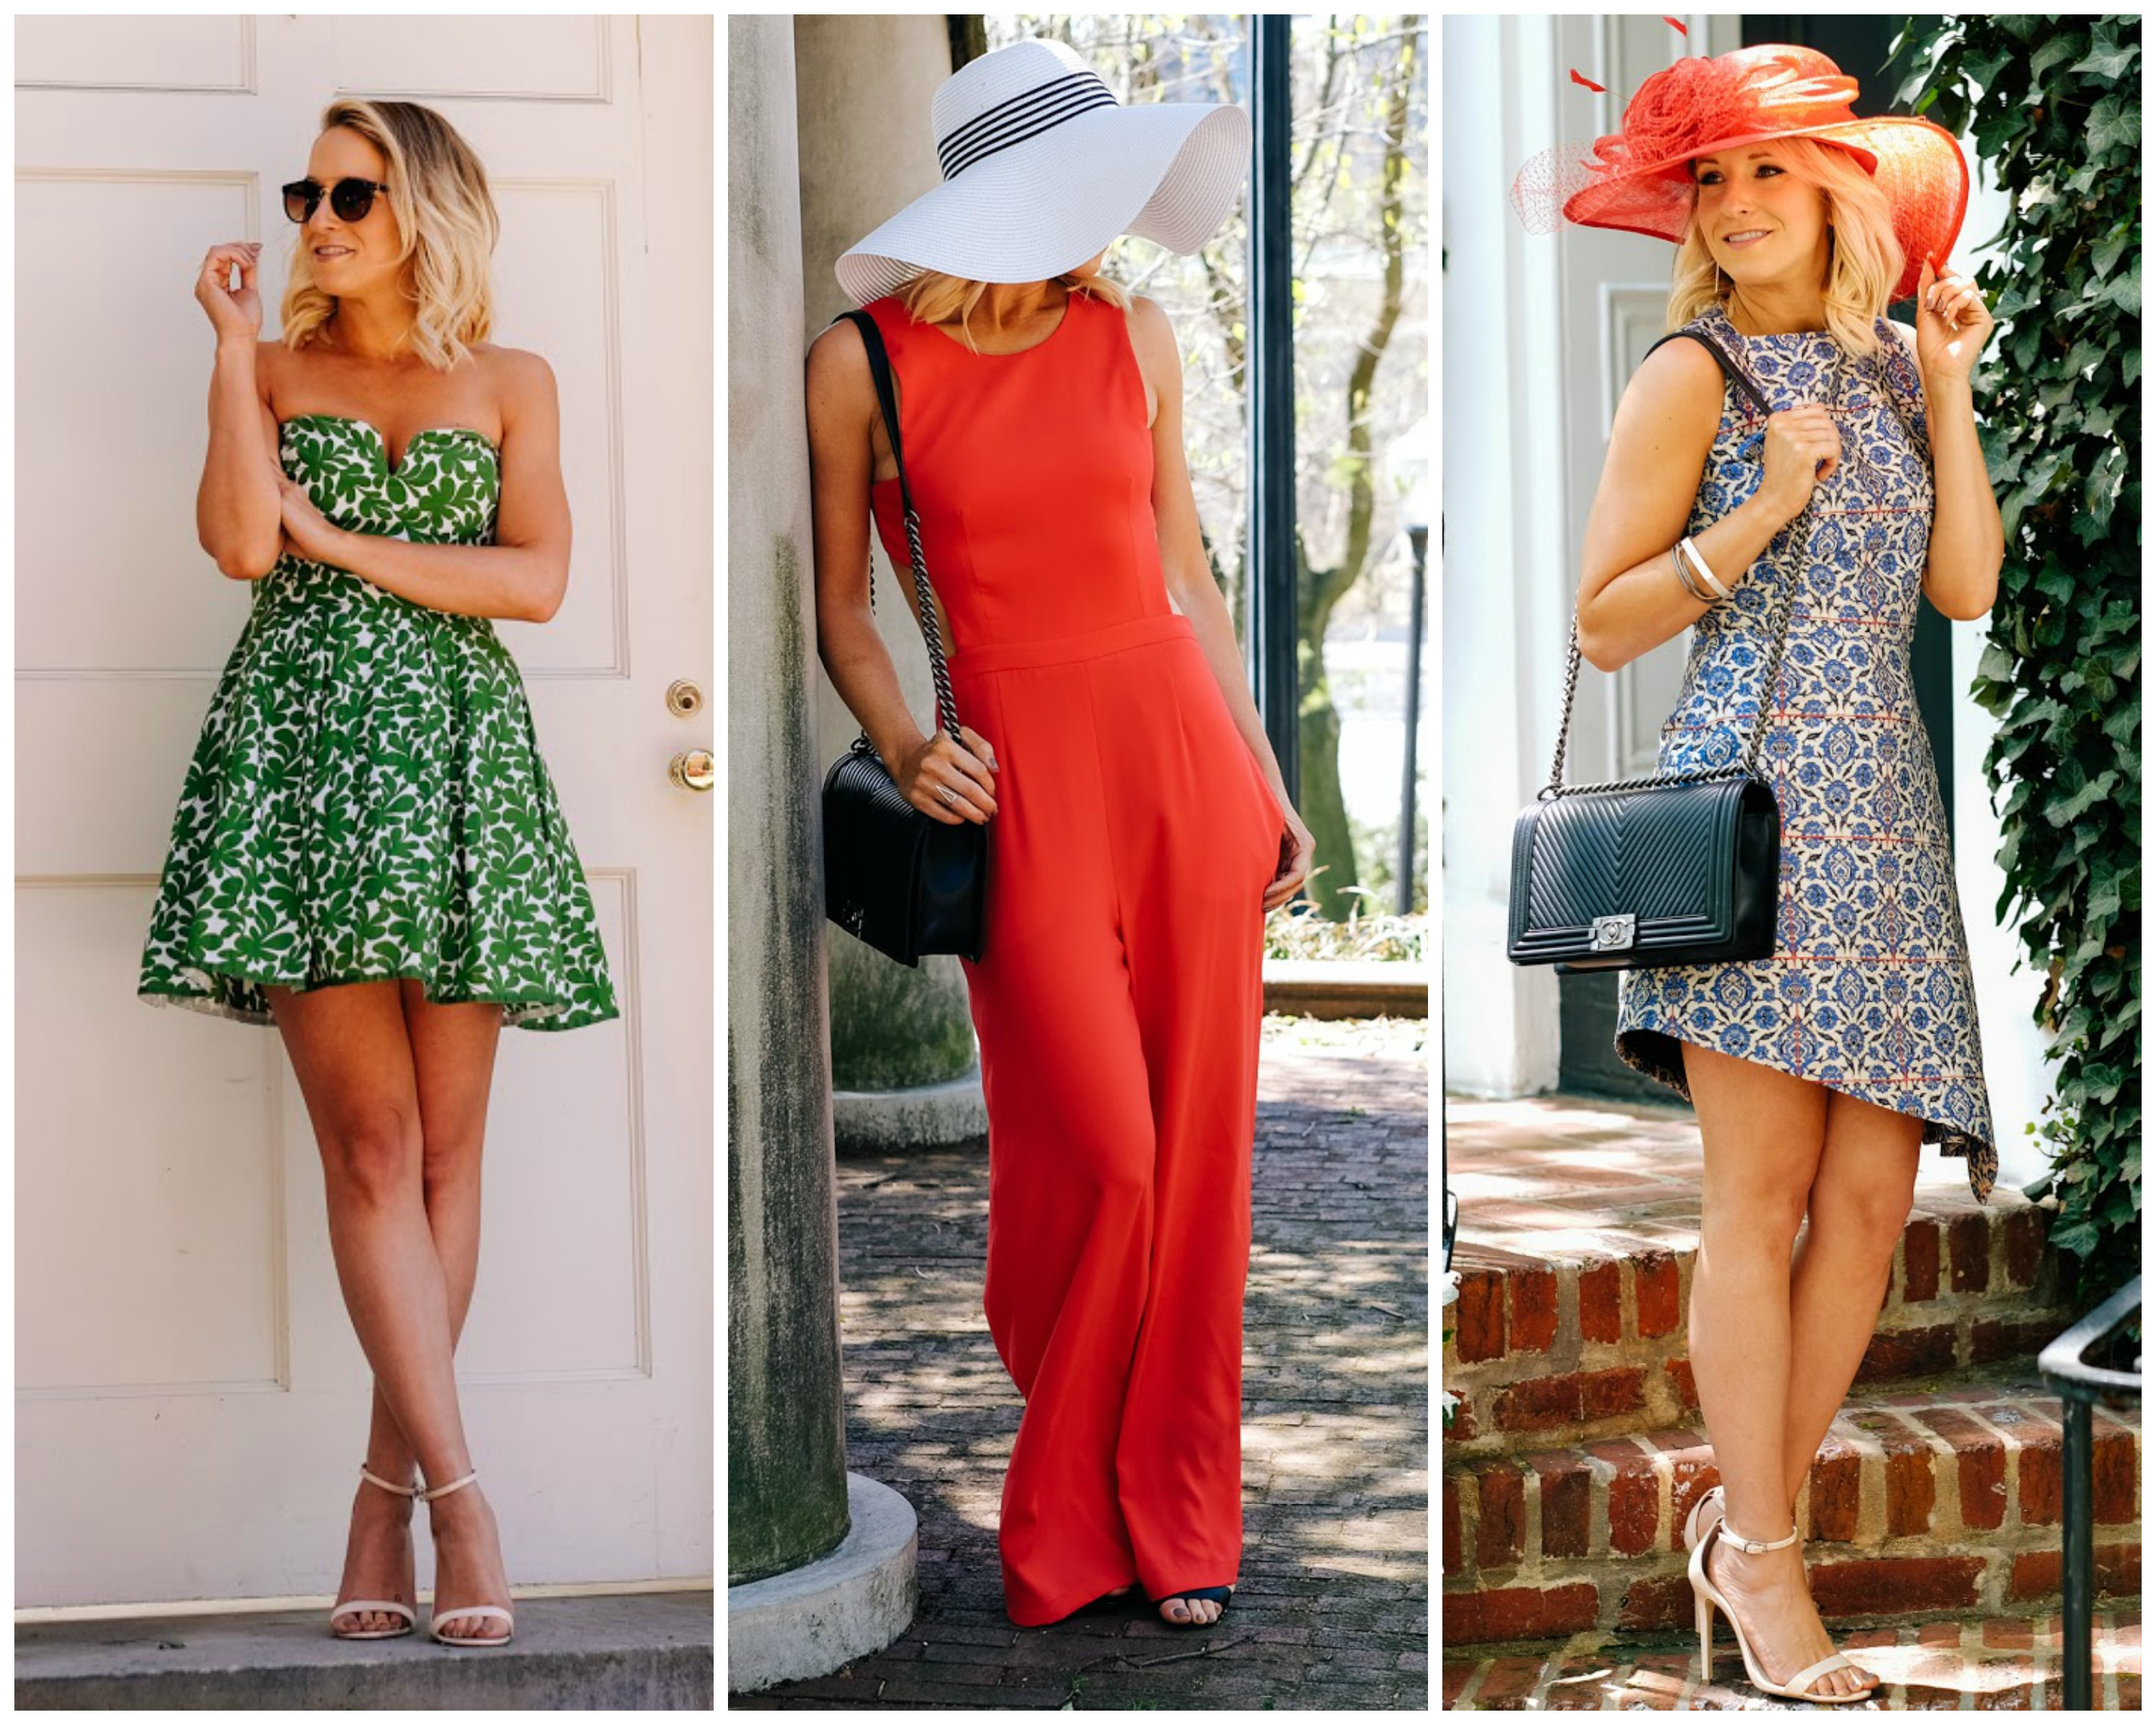 239b588b4d Derby Style  3 Race Day Looks + Giveaway - fiftytwothursdays